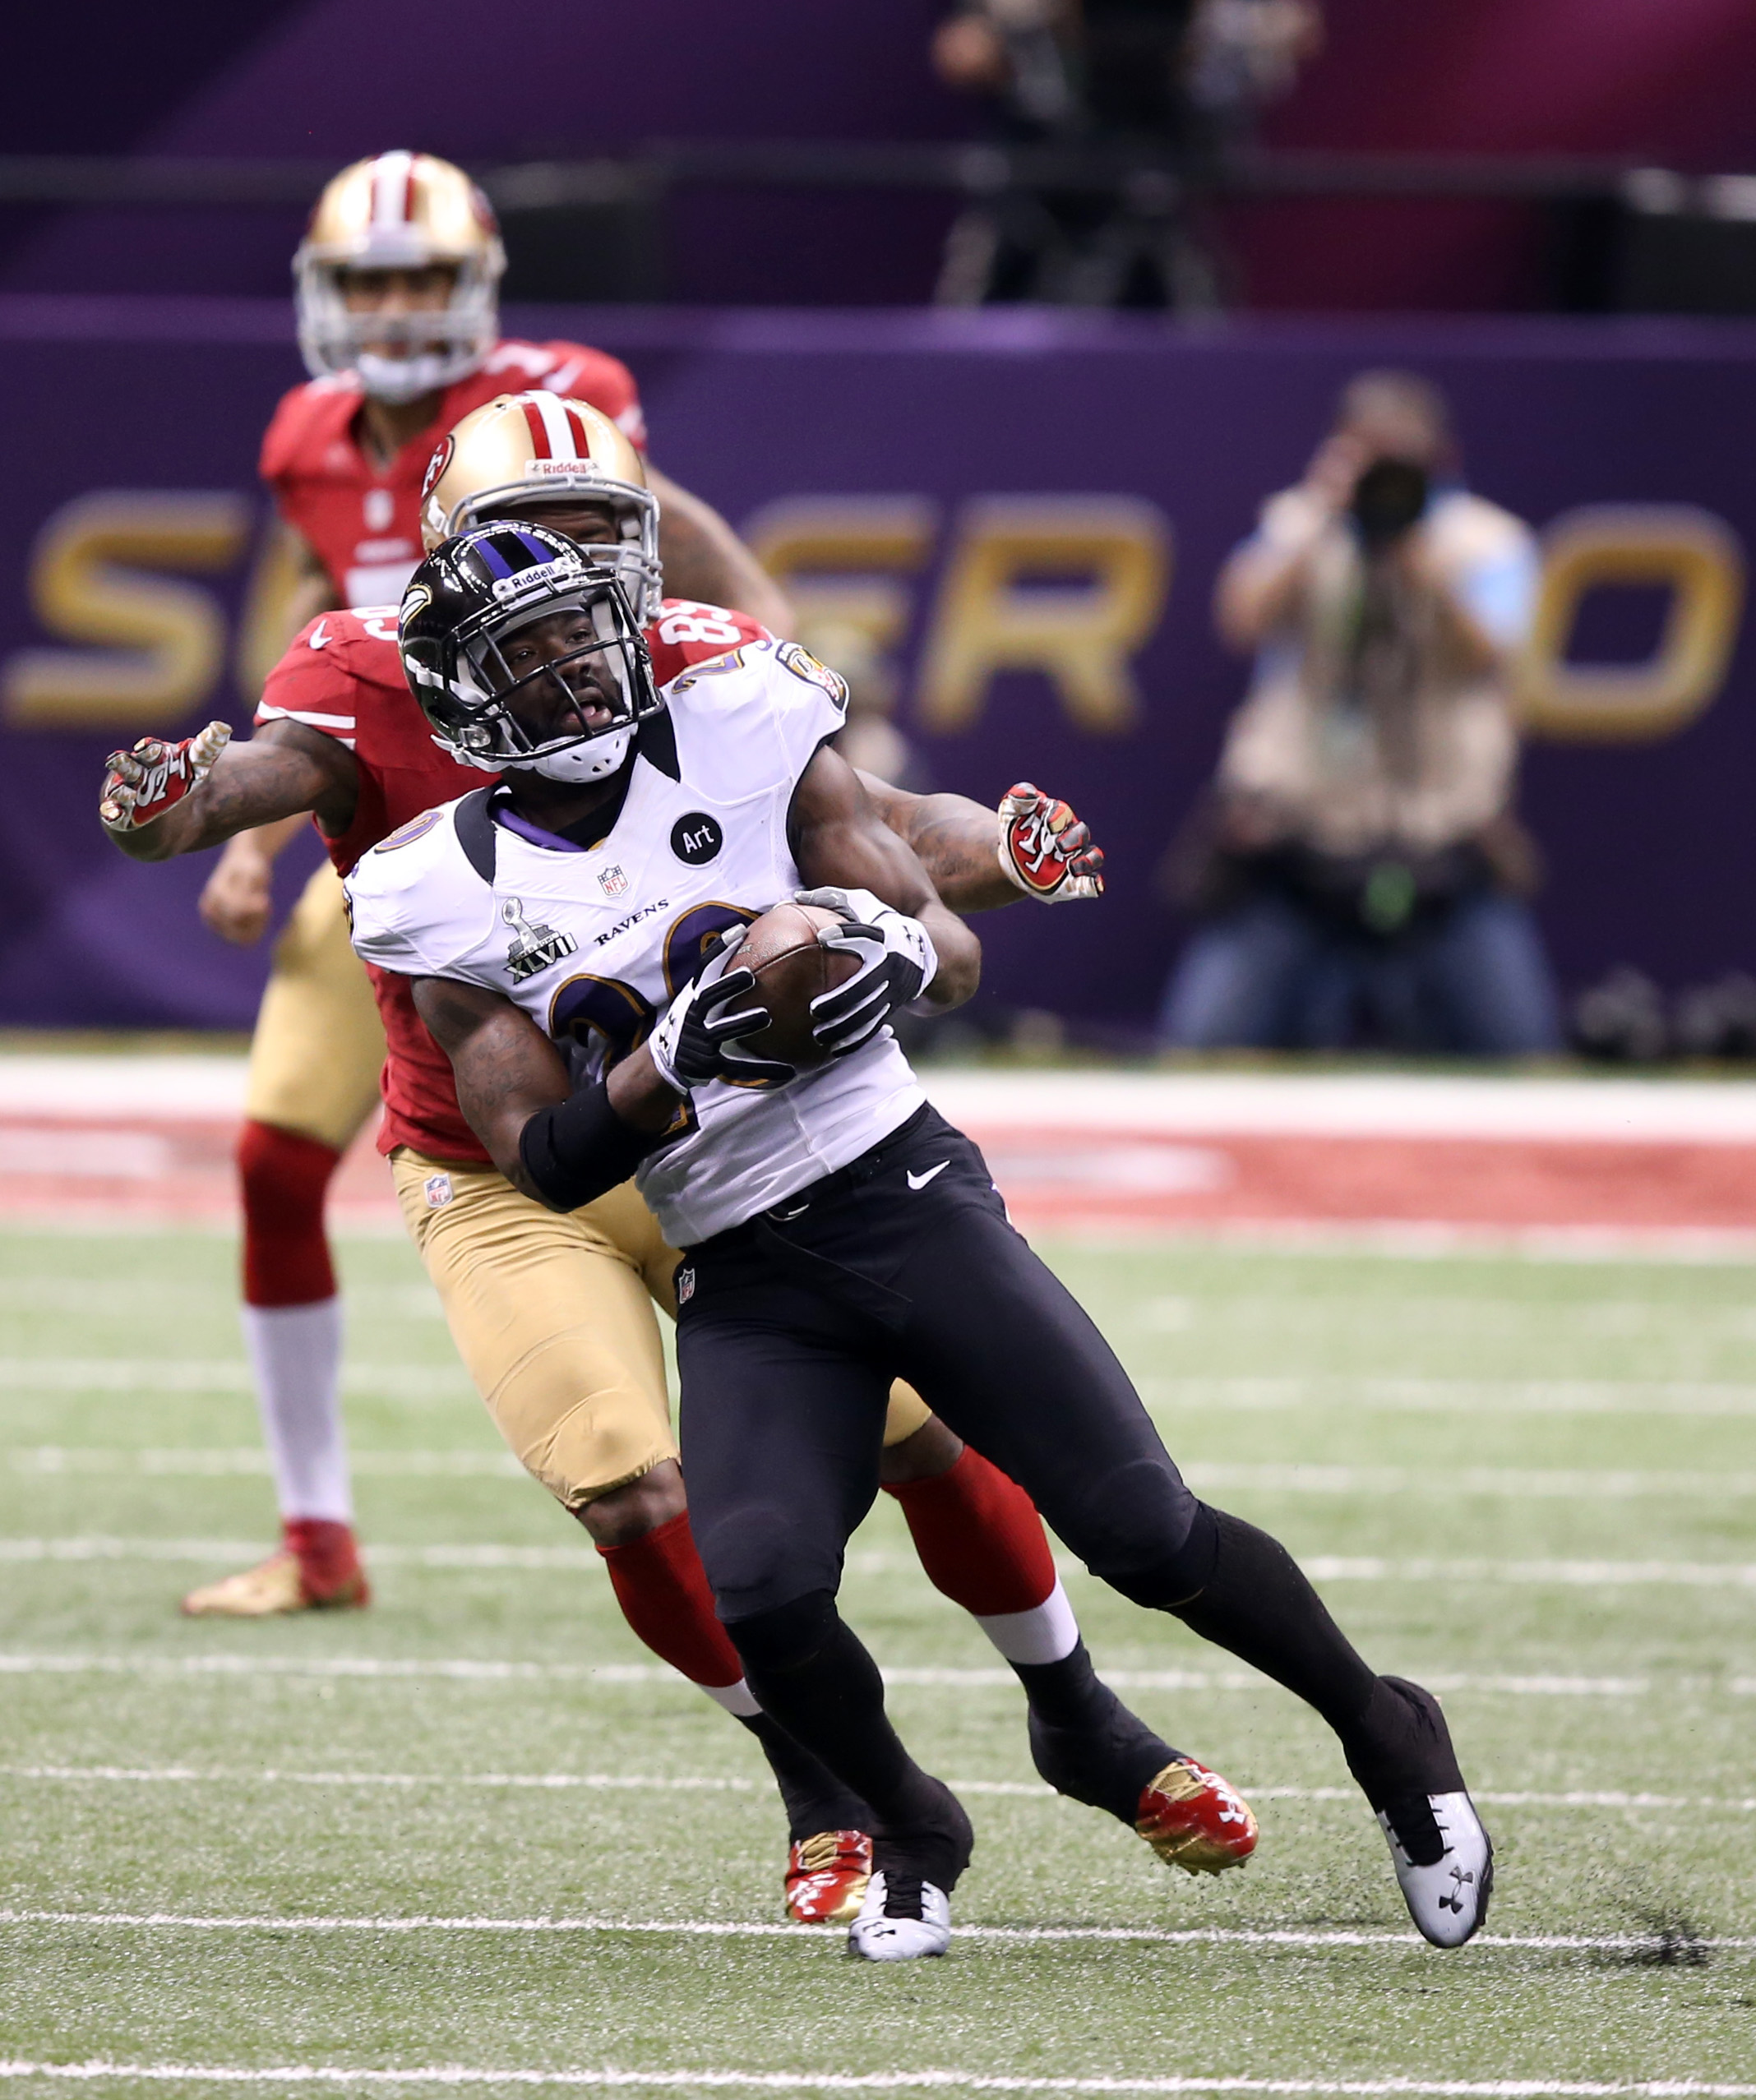 Former Raven Ed Reed had an interception in the Super Bowl vs. the 49ers. (USA TODAY Sports)